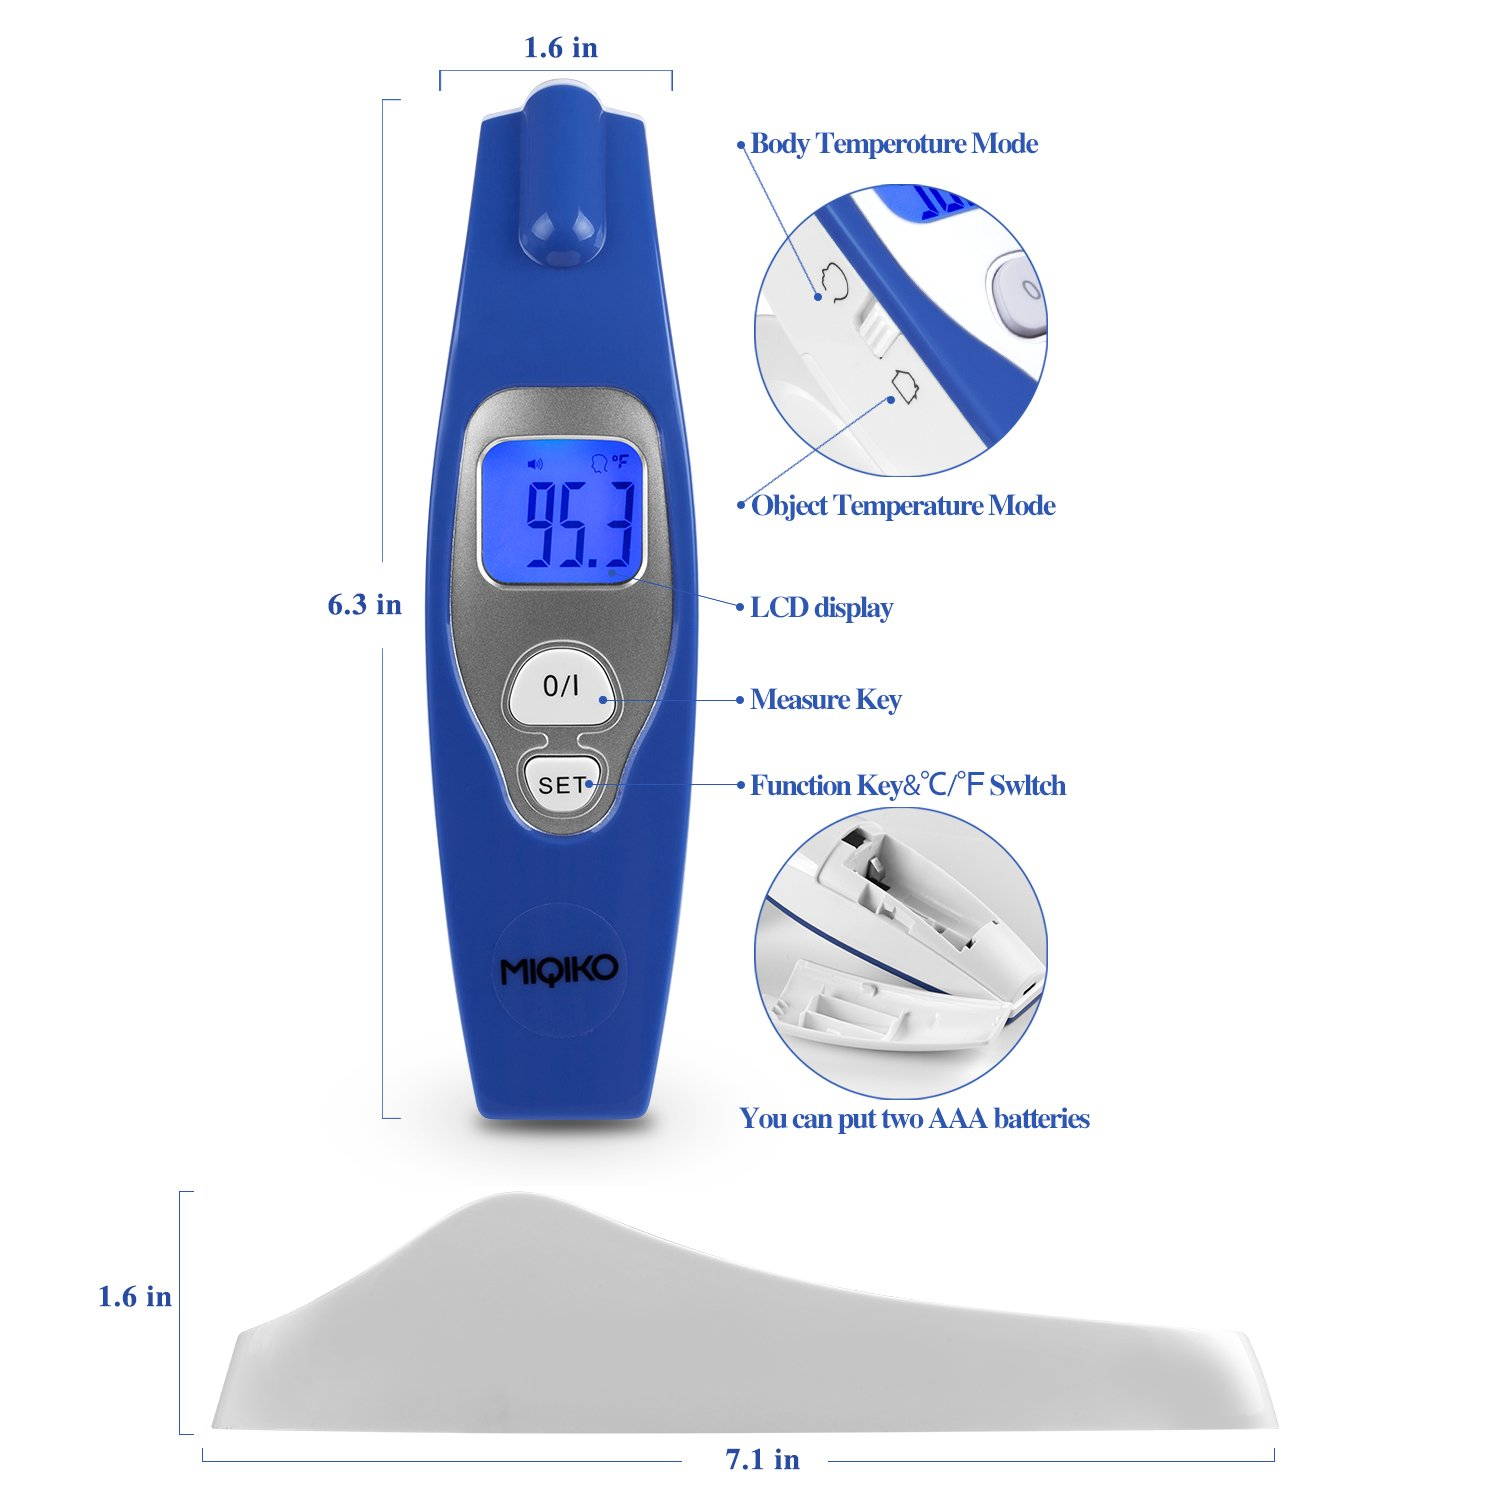 Baby Forehead Thermometer,MIQIKO No-Contact Clinical Infrared Digital Thermometer for /Kids /Adults /Elderly, Forehead /Object Mode,32 Memory, with Instant Reading and Improved Accuracy by MIQIKO (Image #4)